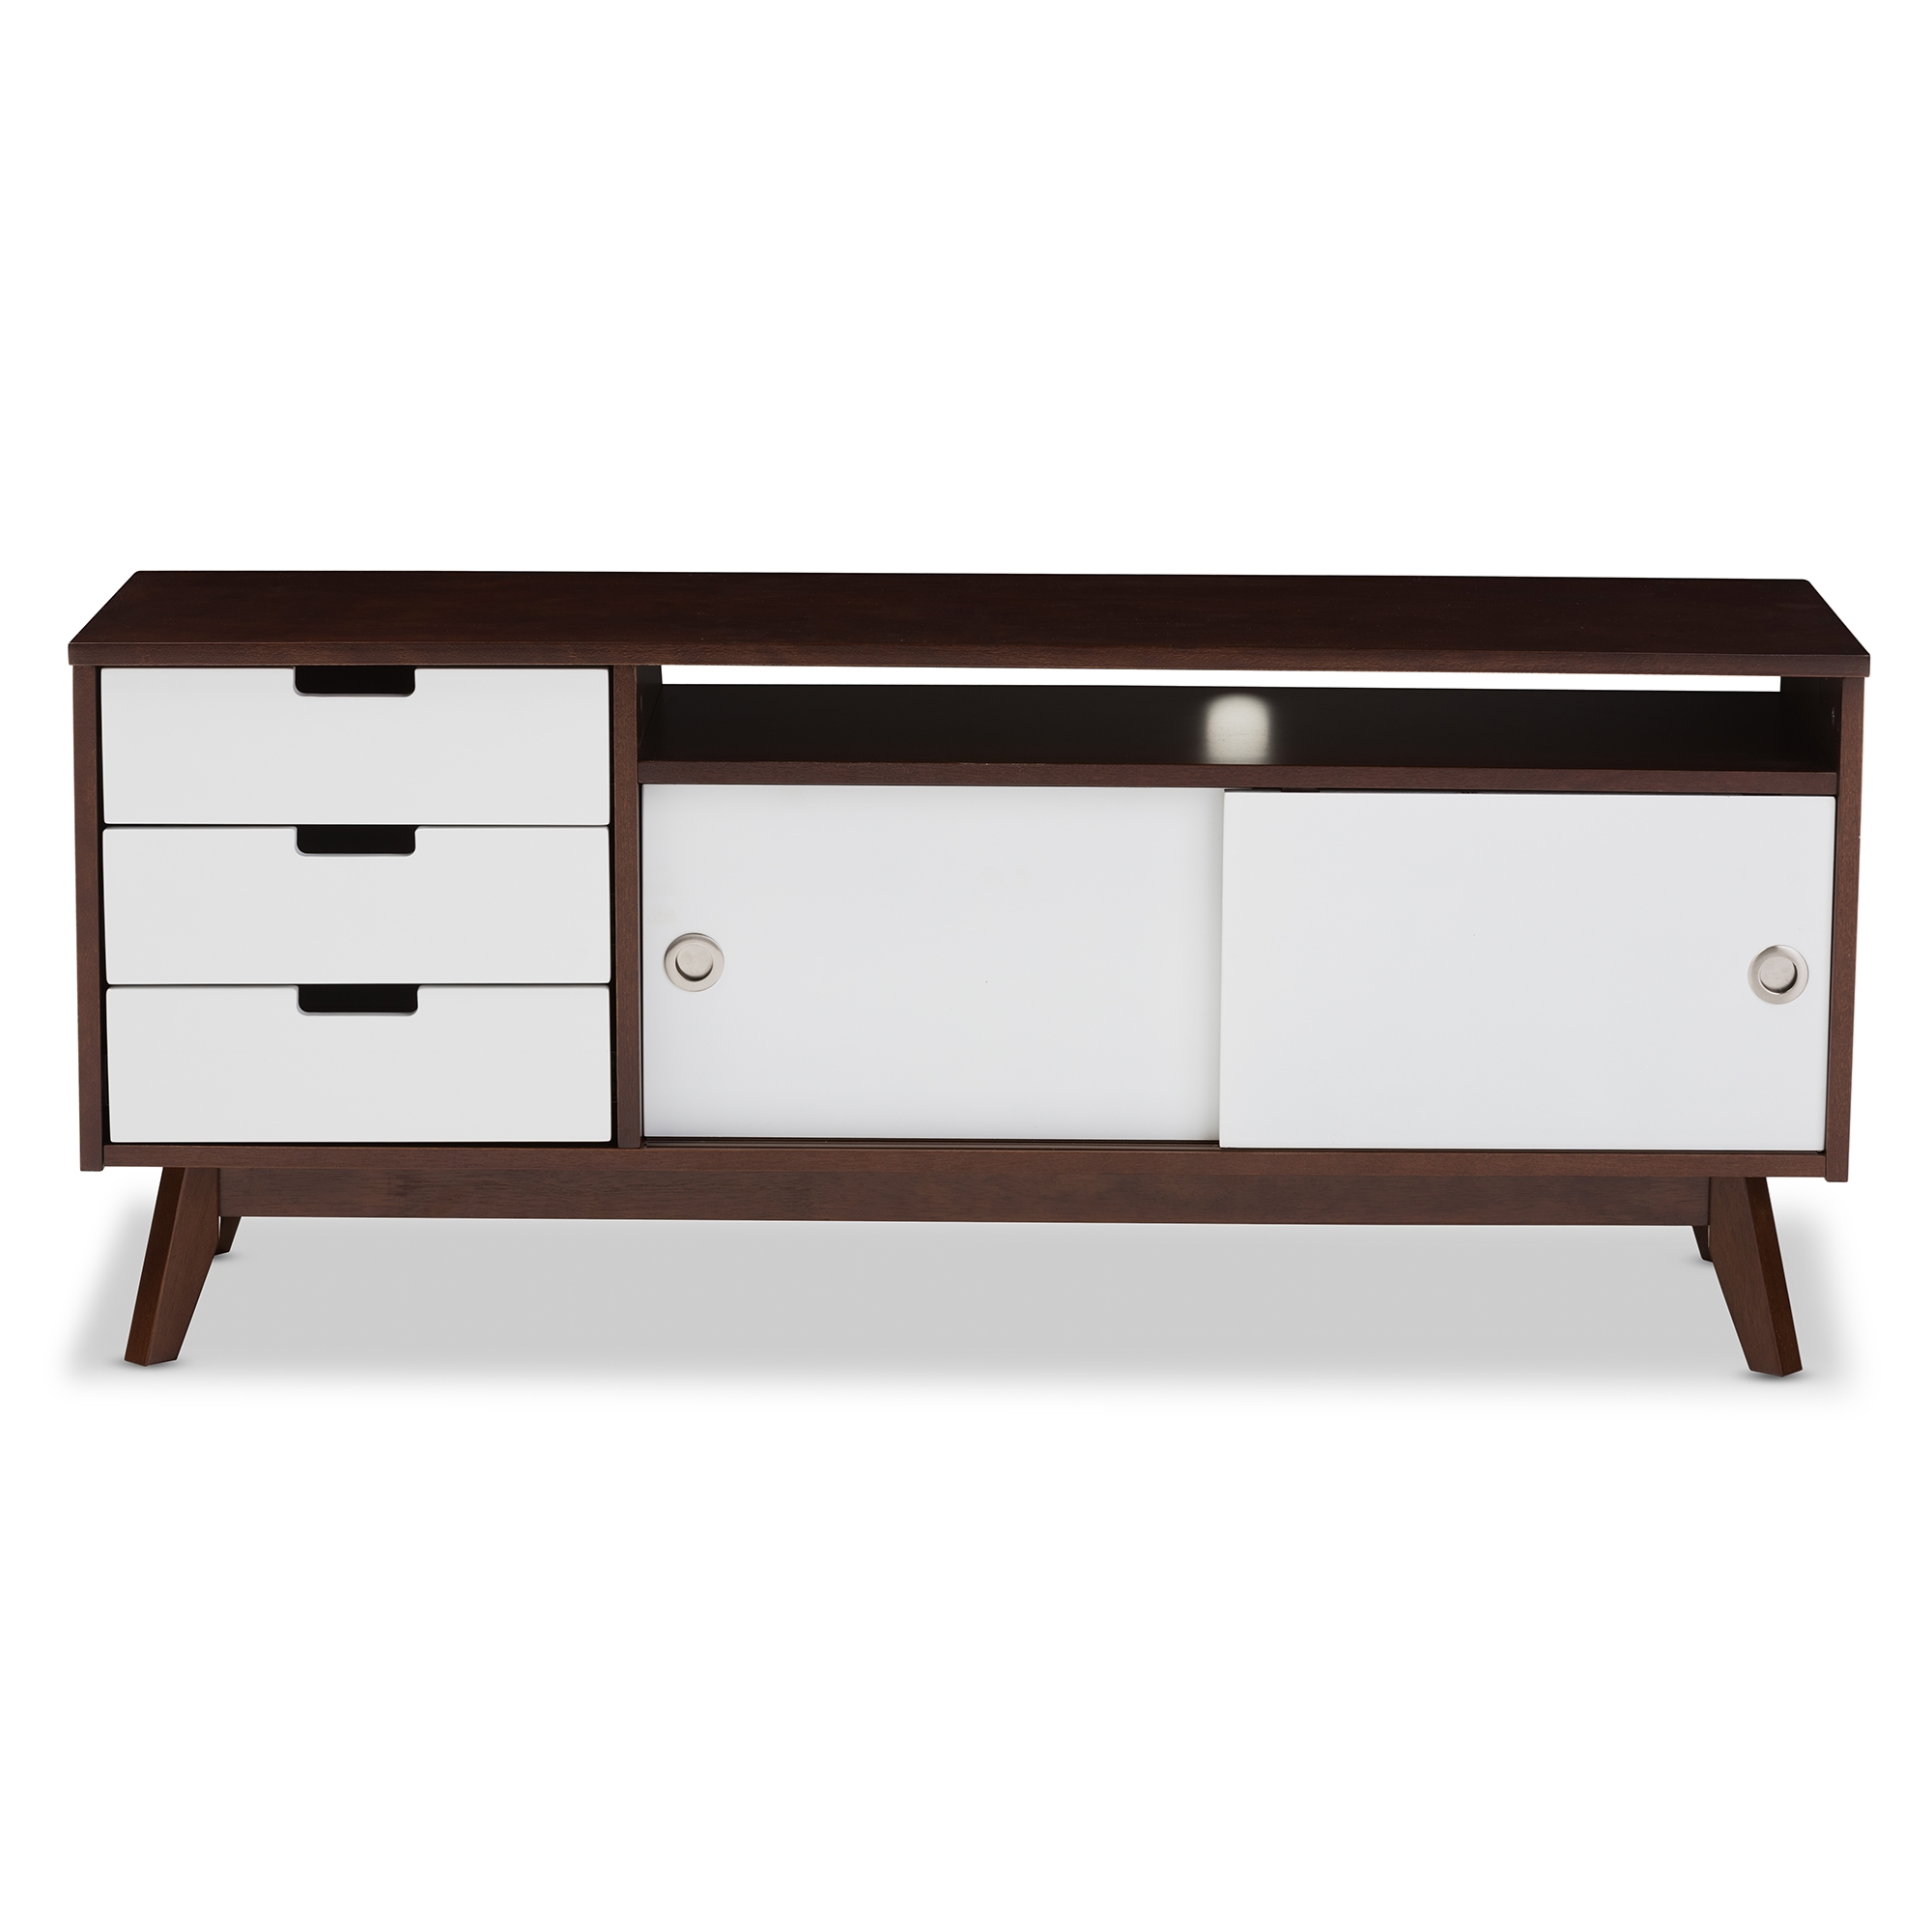 Baxton Studio Alphard Mid Century Modern Dark Walnut And White Two Tone  Finish Wood TV Cabinet